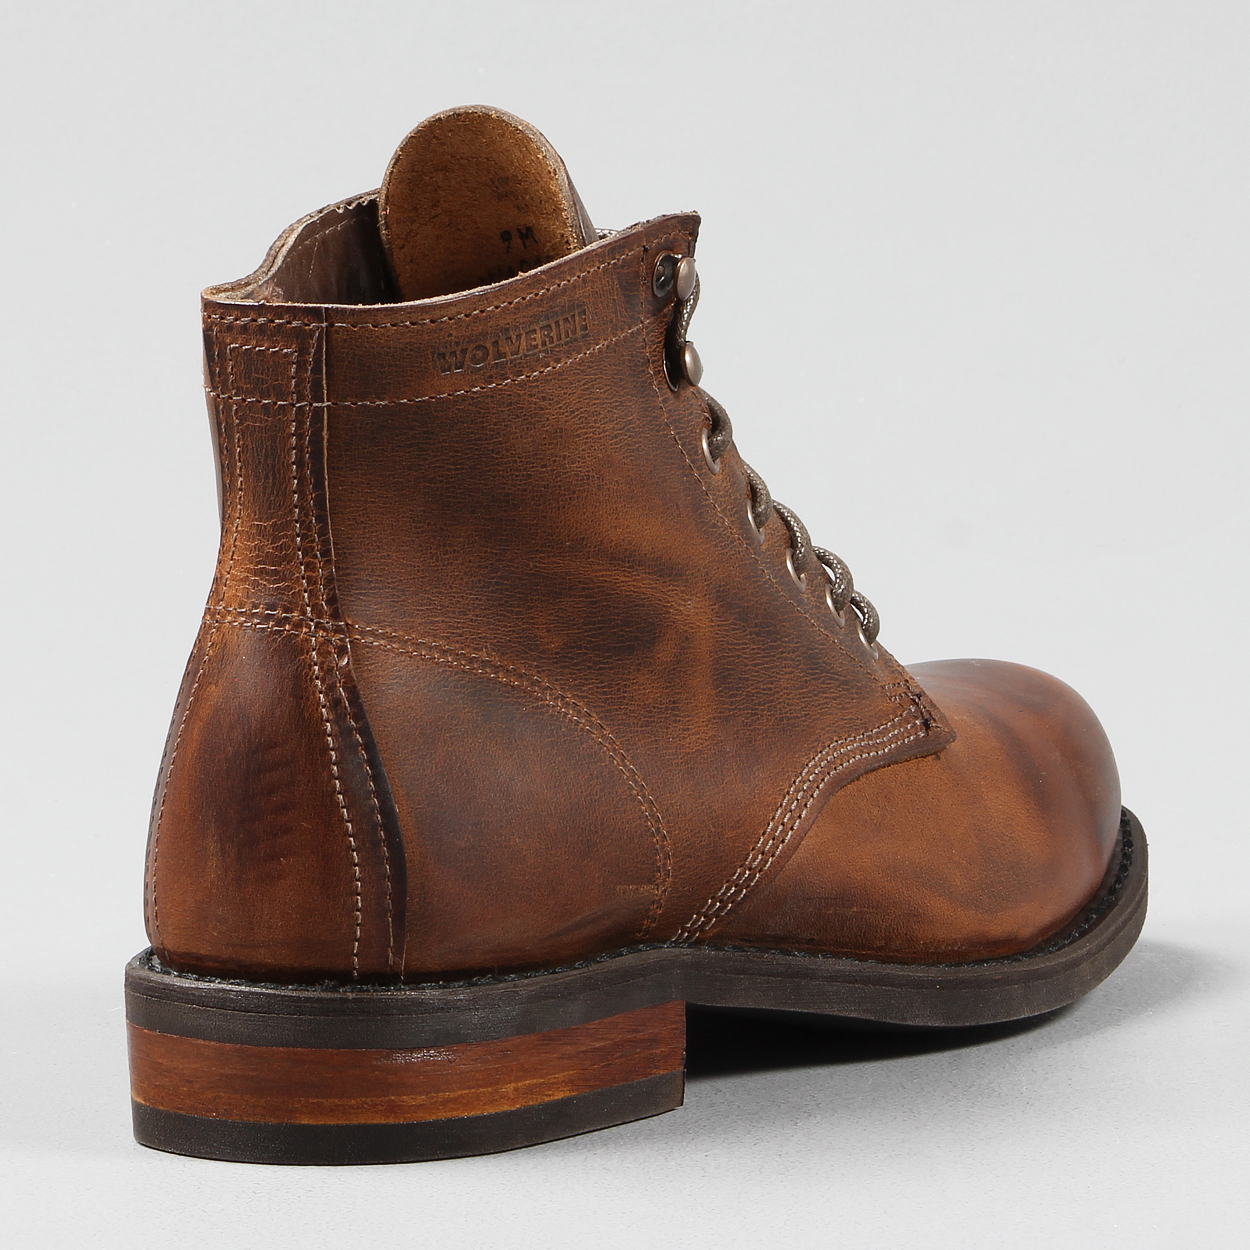 397151664a7 Wolverine 1883 Mens Kilometer Full Leather Boot Brown Leather £187.50